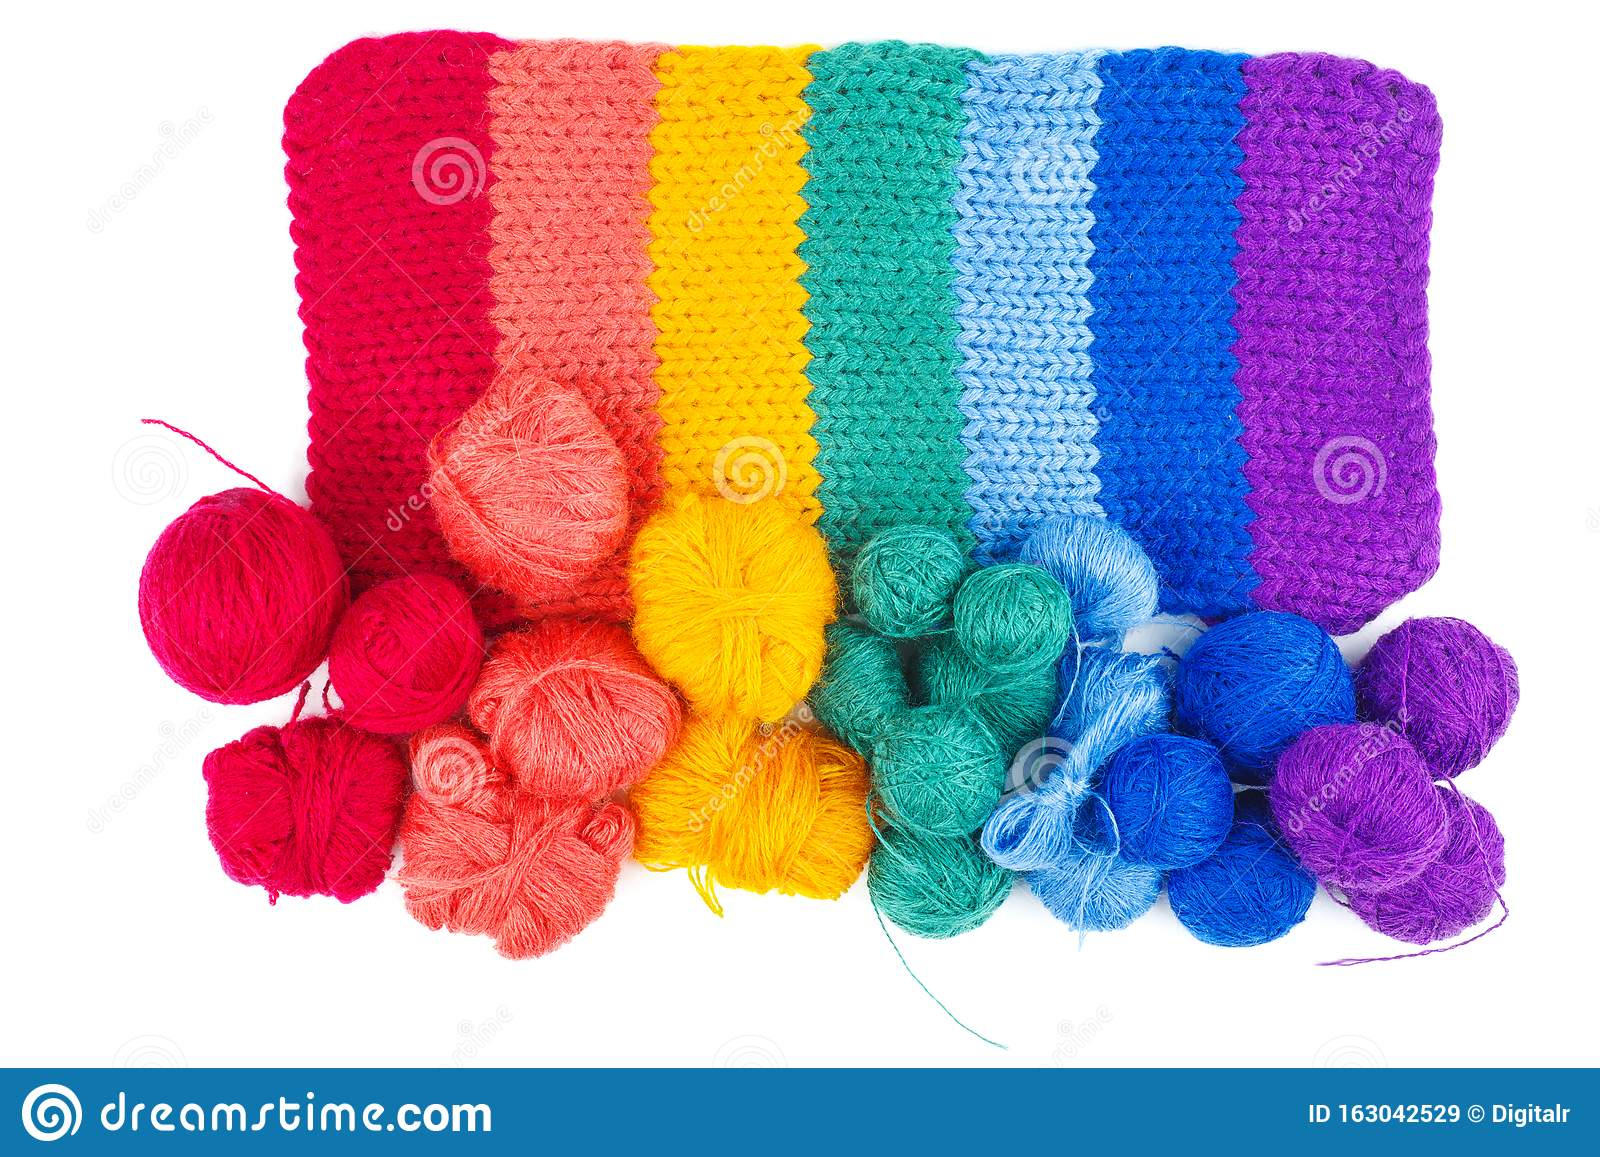 Rainbow Knitted Fabric And Balls Of Wool Thread Isolated On White Background Stock Image Image Of Fabric Balls 163042529